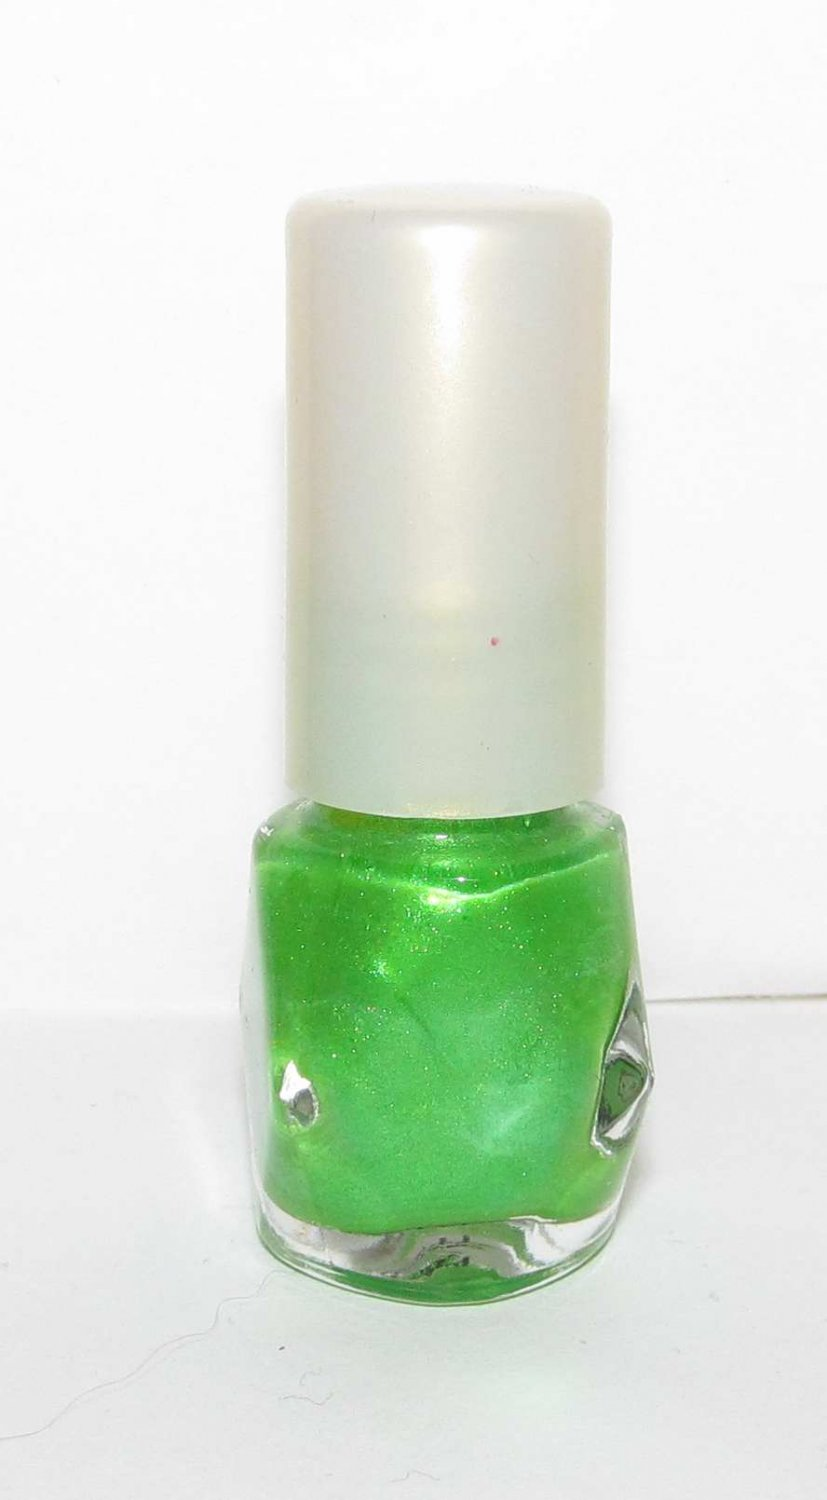 Kesho-Wakusei Nail Polish - Gorgeous green color